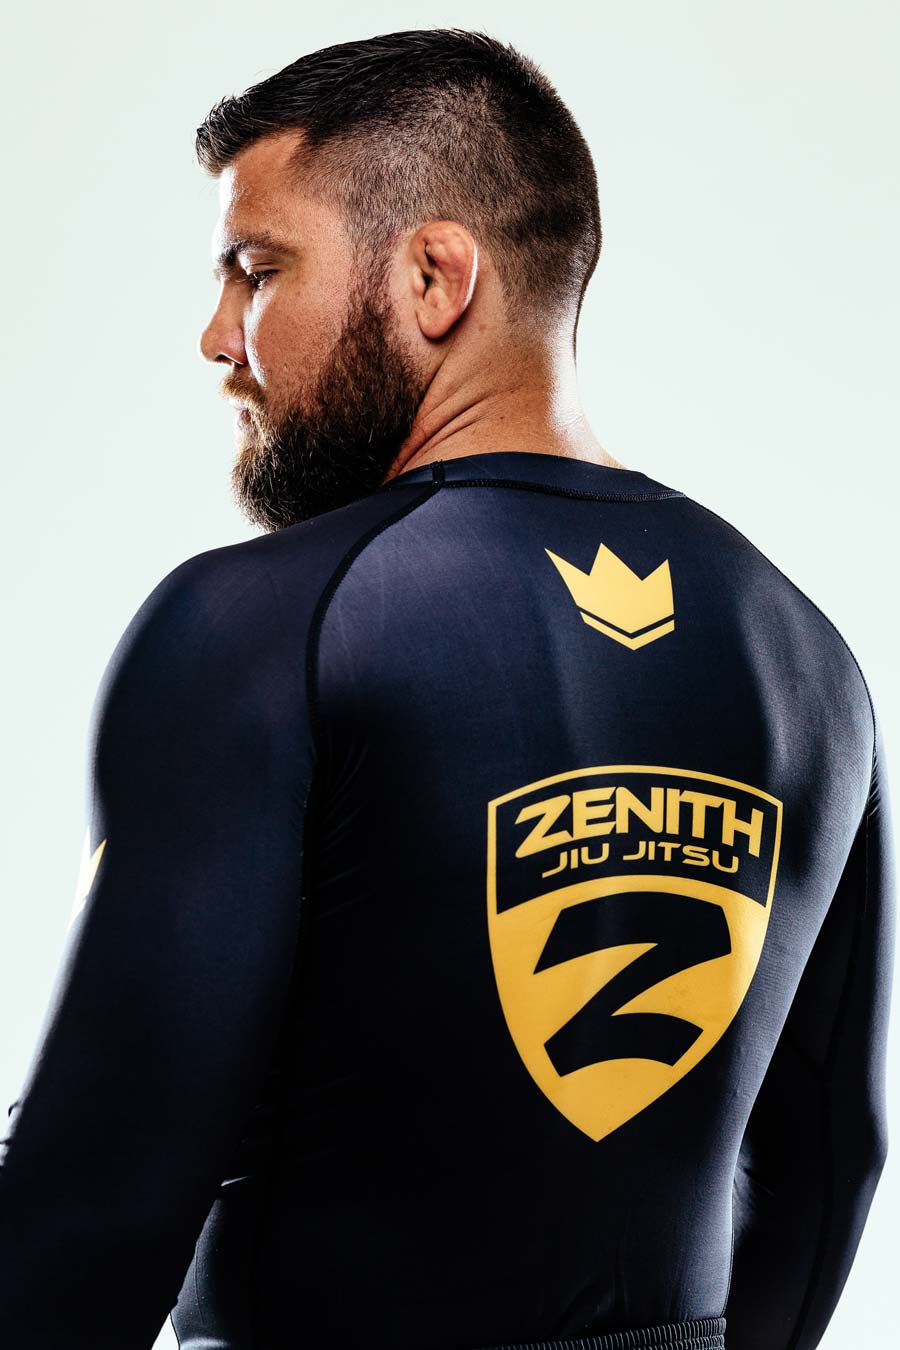 robert drysdale stands with his back to the camera looking over his left shoulder - the zenith jiu jitsu logo is on his back